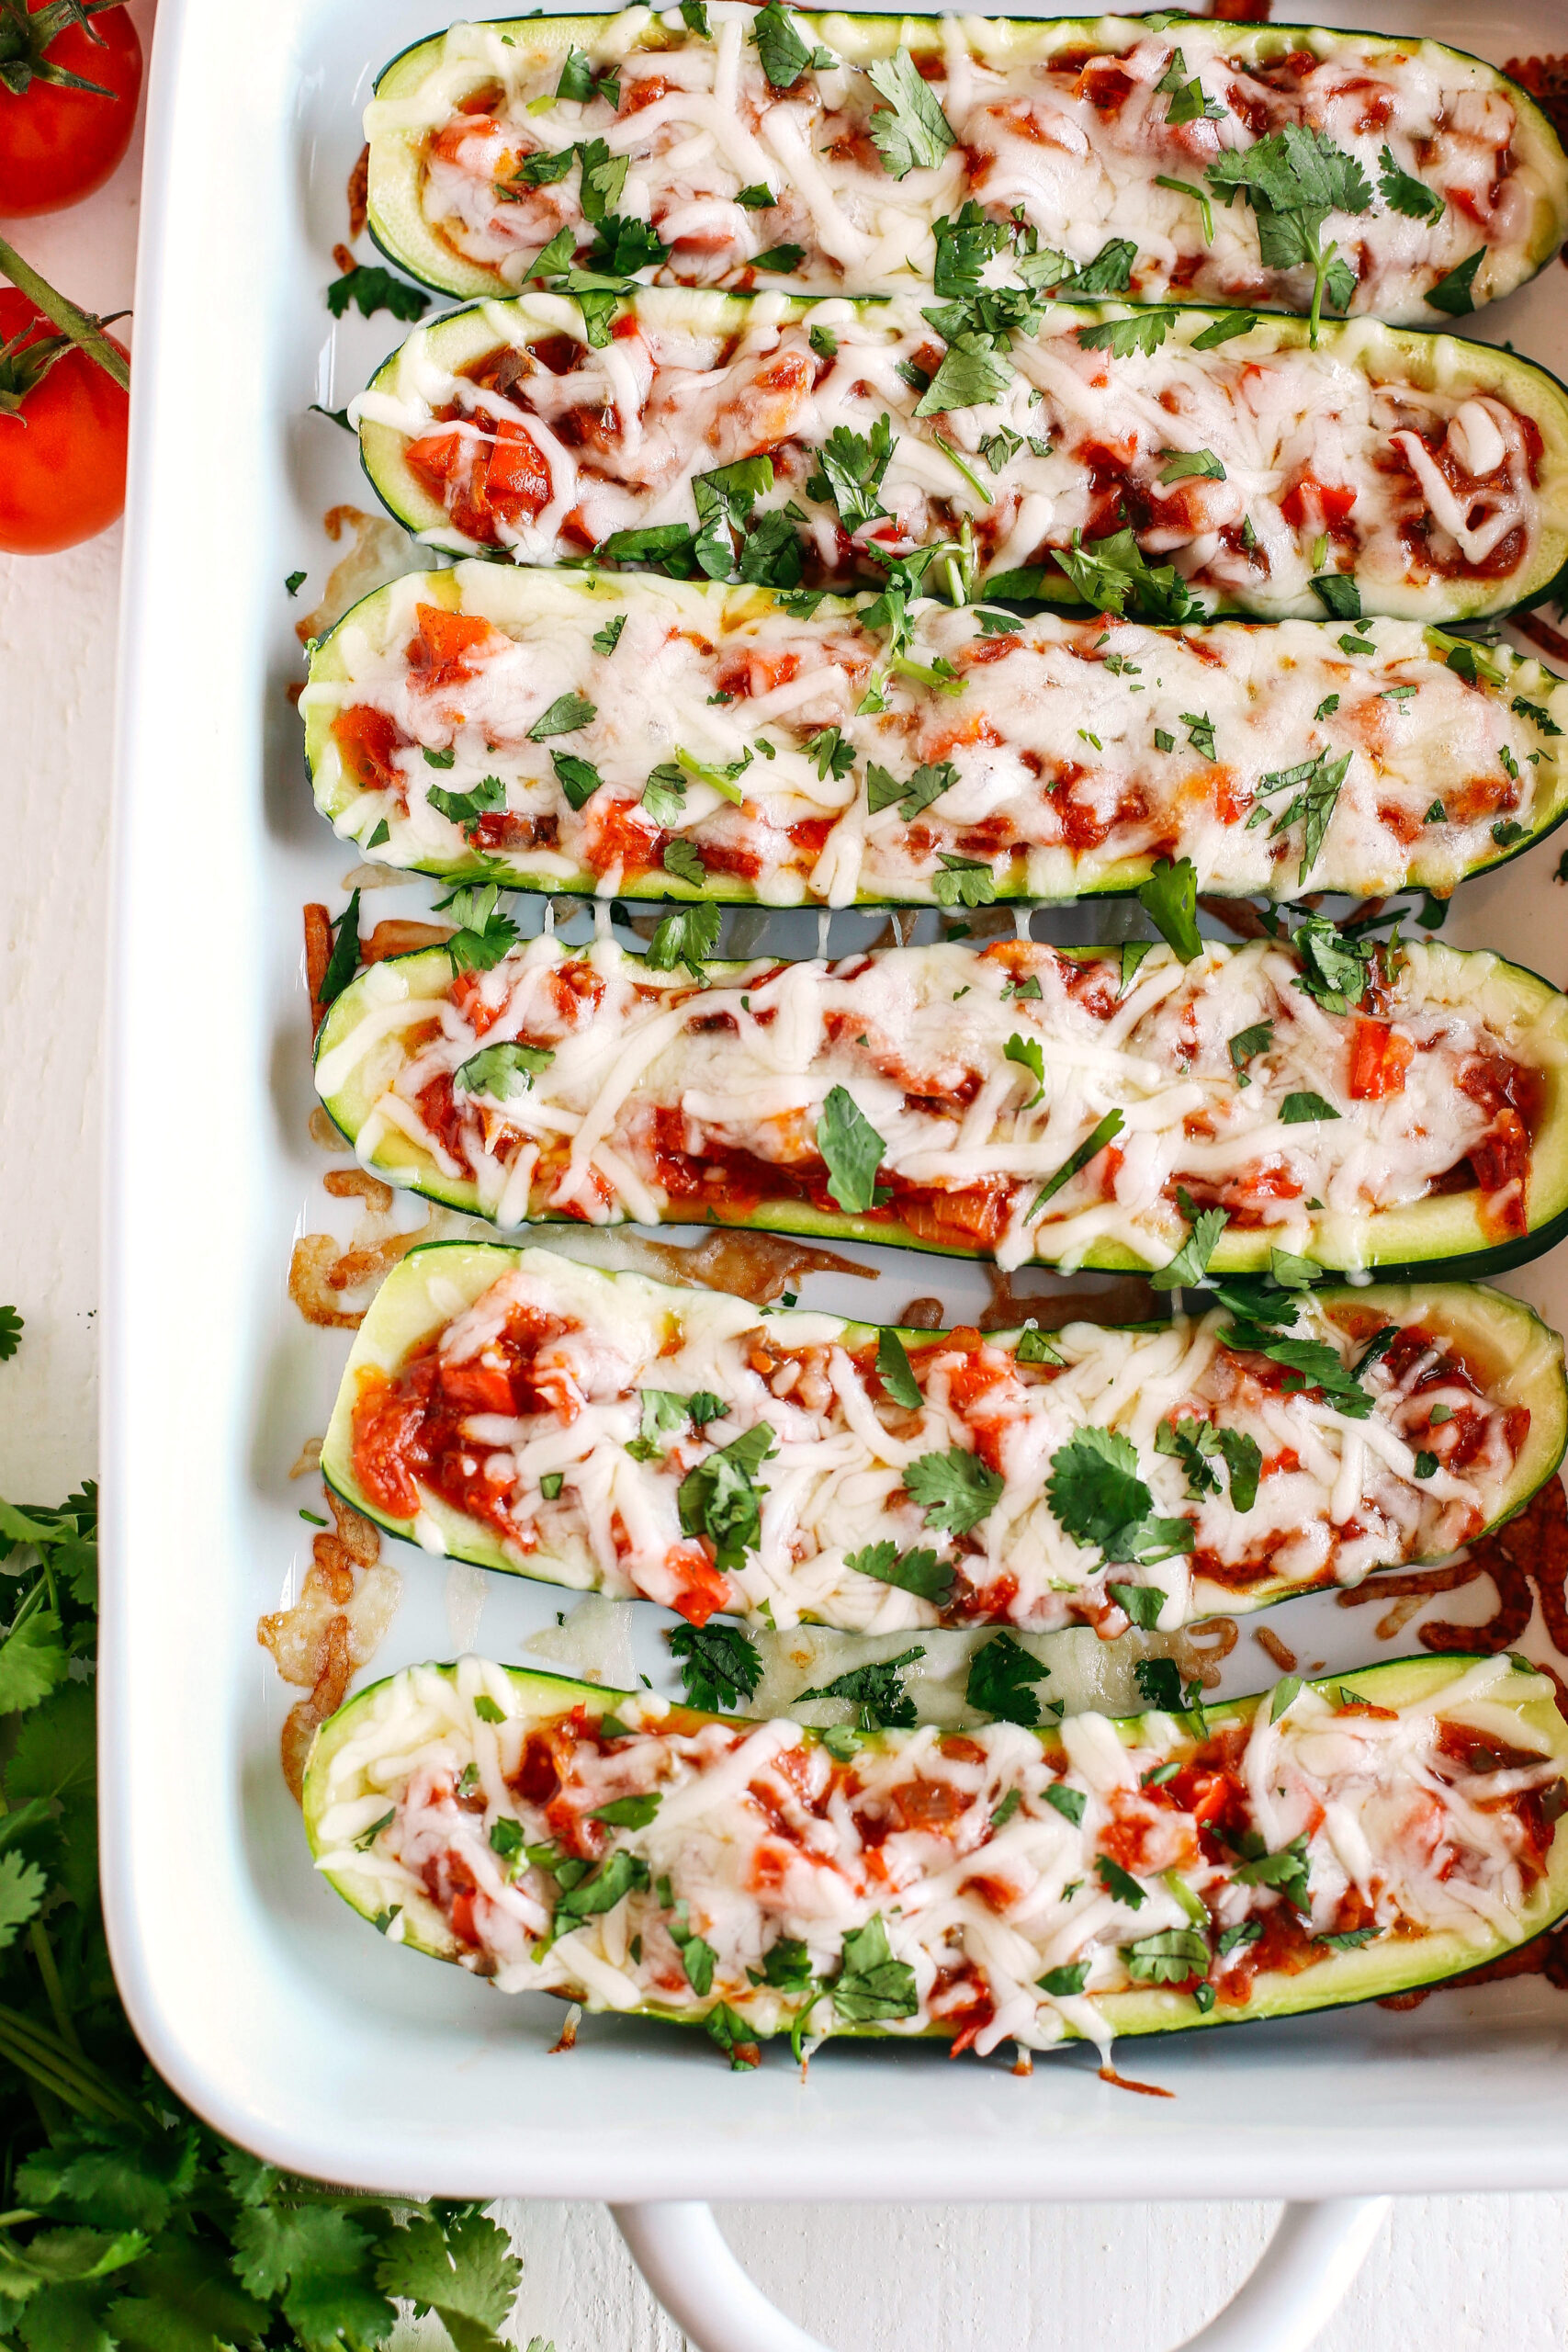 These Enchilada Stuffed Zucchini Boats are super flavorful, easy to make and are a much healthier alternative to regular enchiladas!